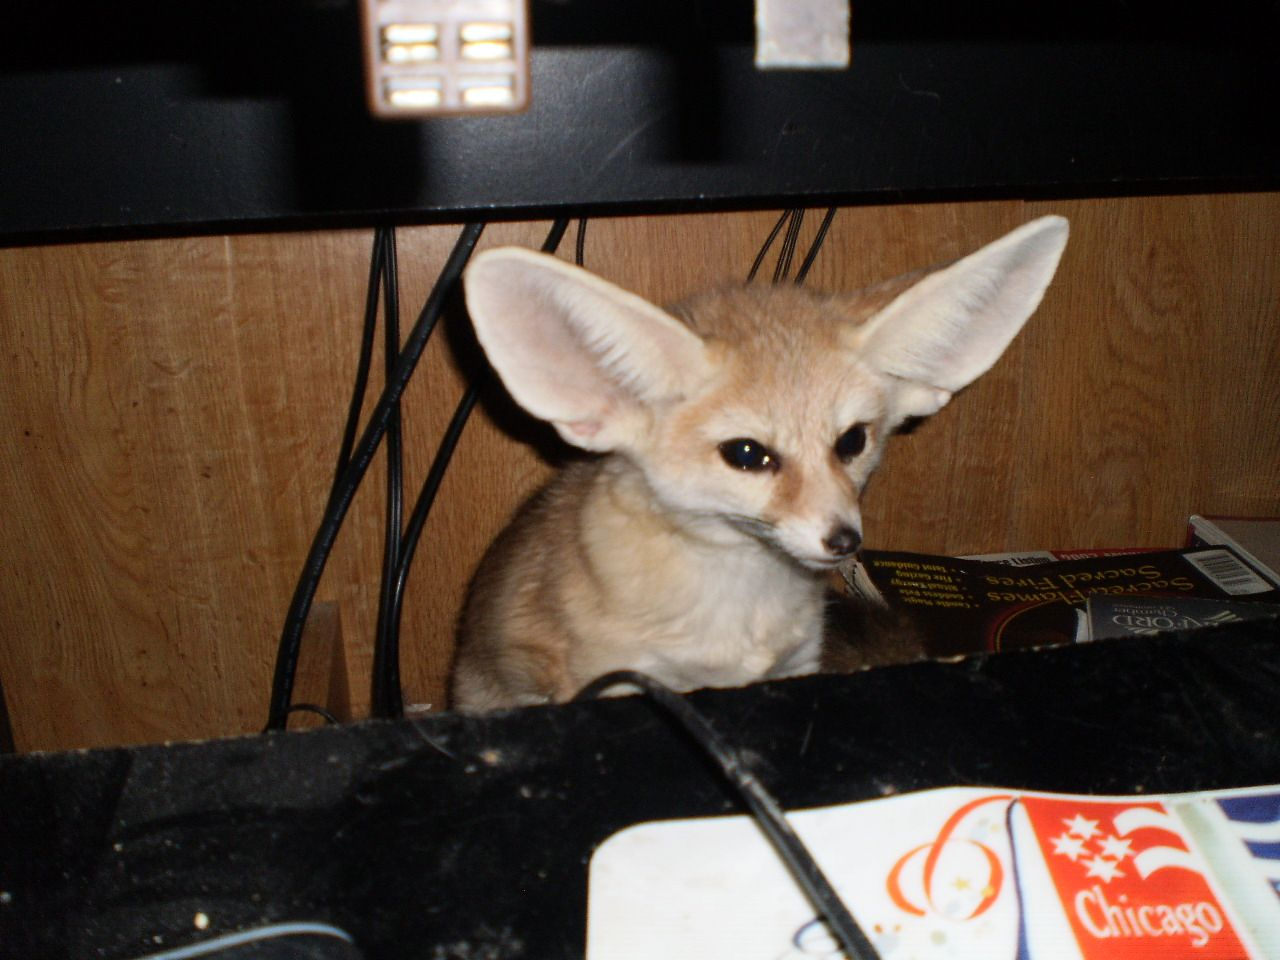 Quiggly Is One Of The 4 Fennec Foxes At Critter Camp He S Is Quite A Character And Has A Very Loud Voice Youtube Crittercamp Fennec Fox Pet Pet Care Pets